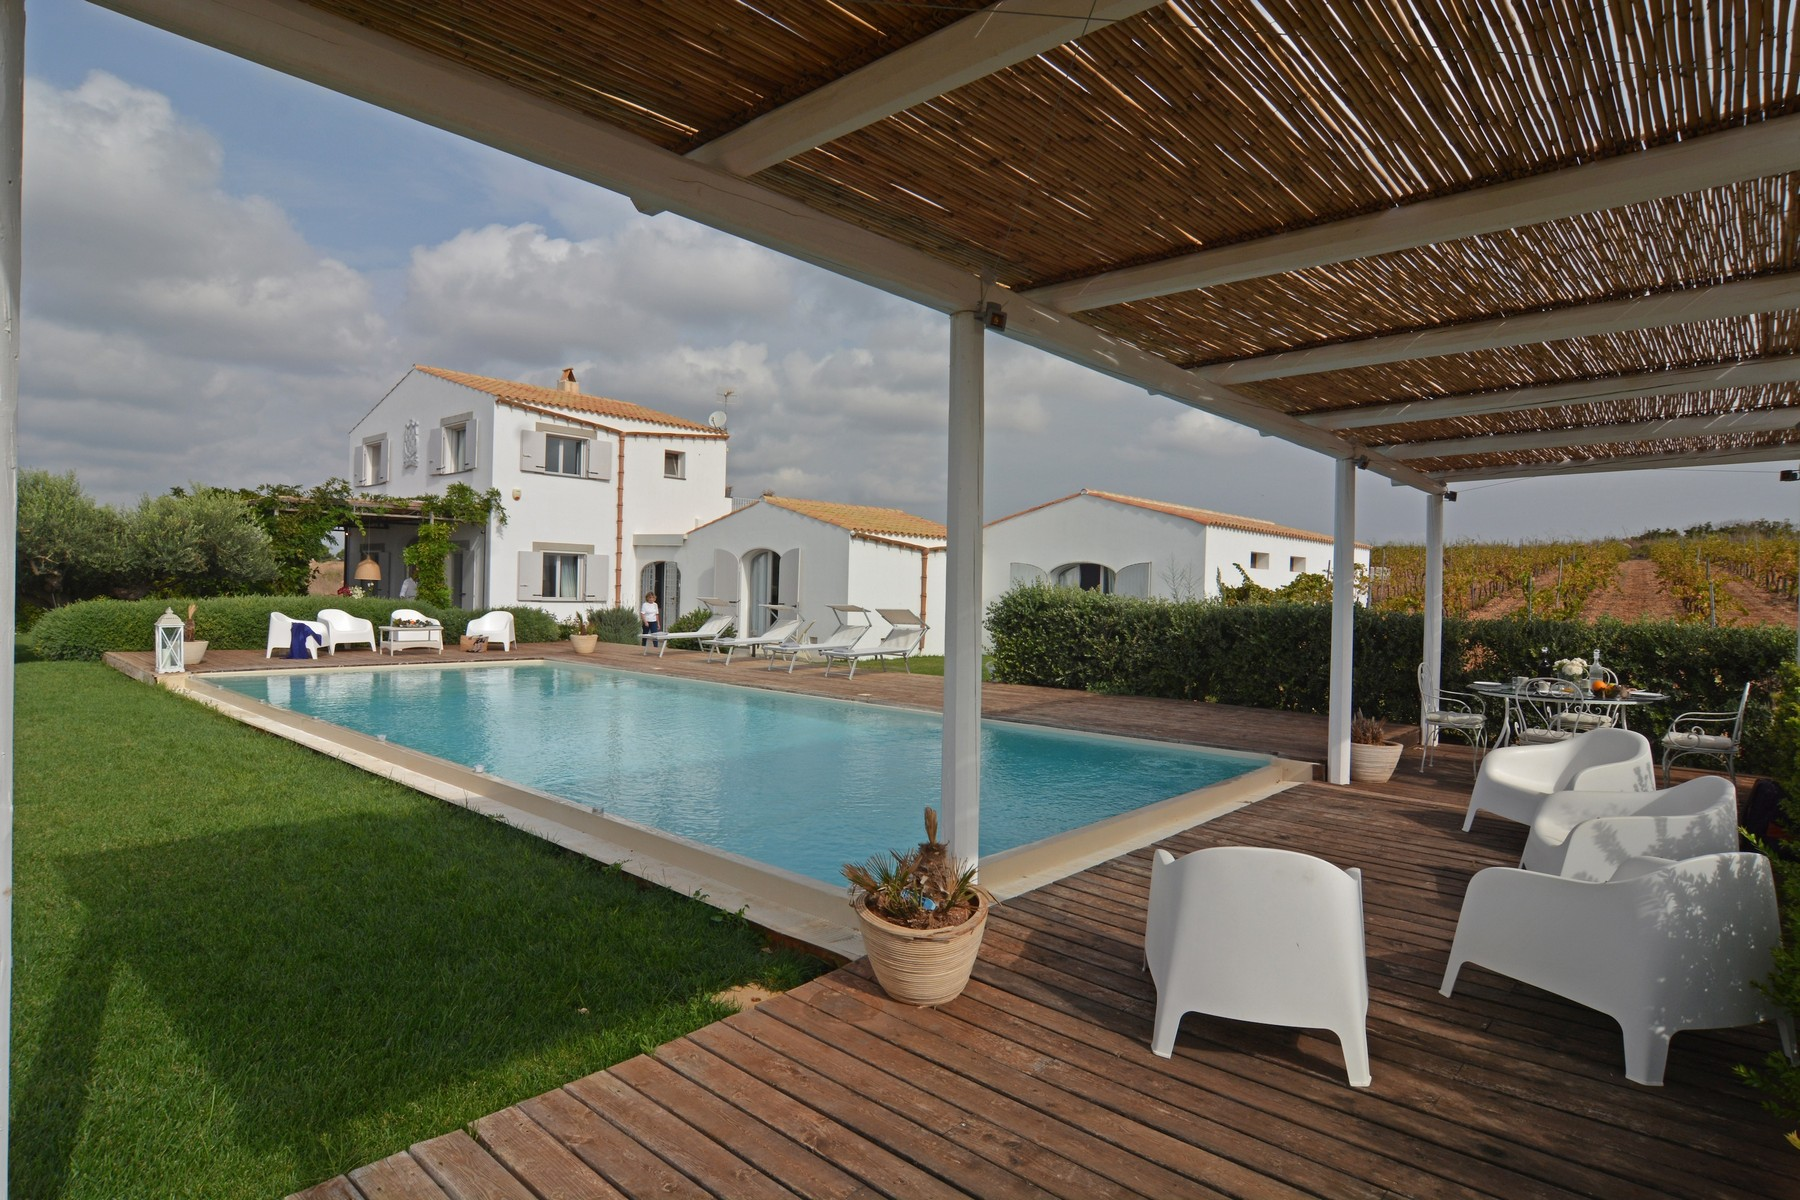 其它住宅 为 销售 在 Stylish villa with pool in the Sicilian wine county Menfi, Agrigento, 意大利